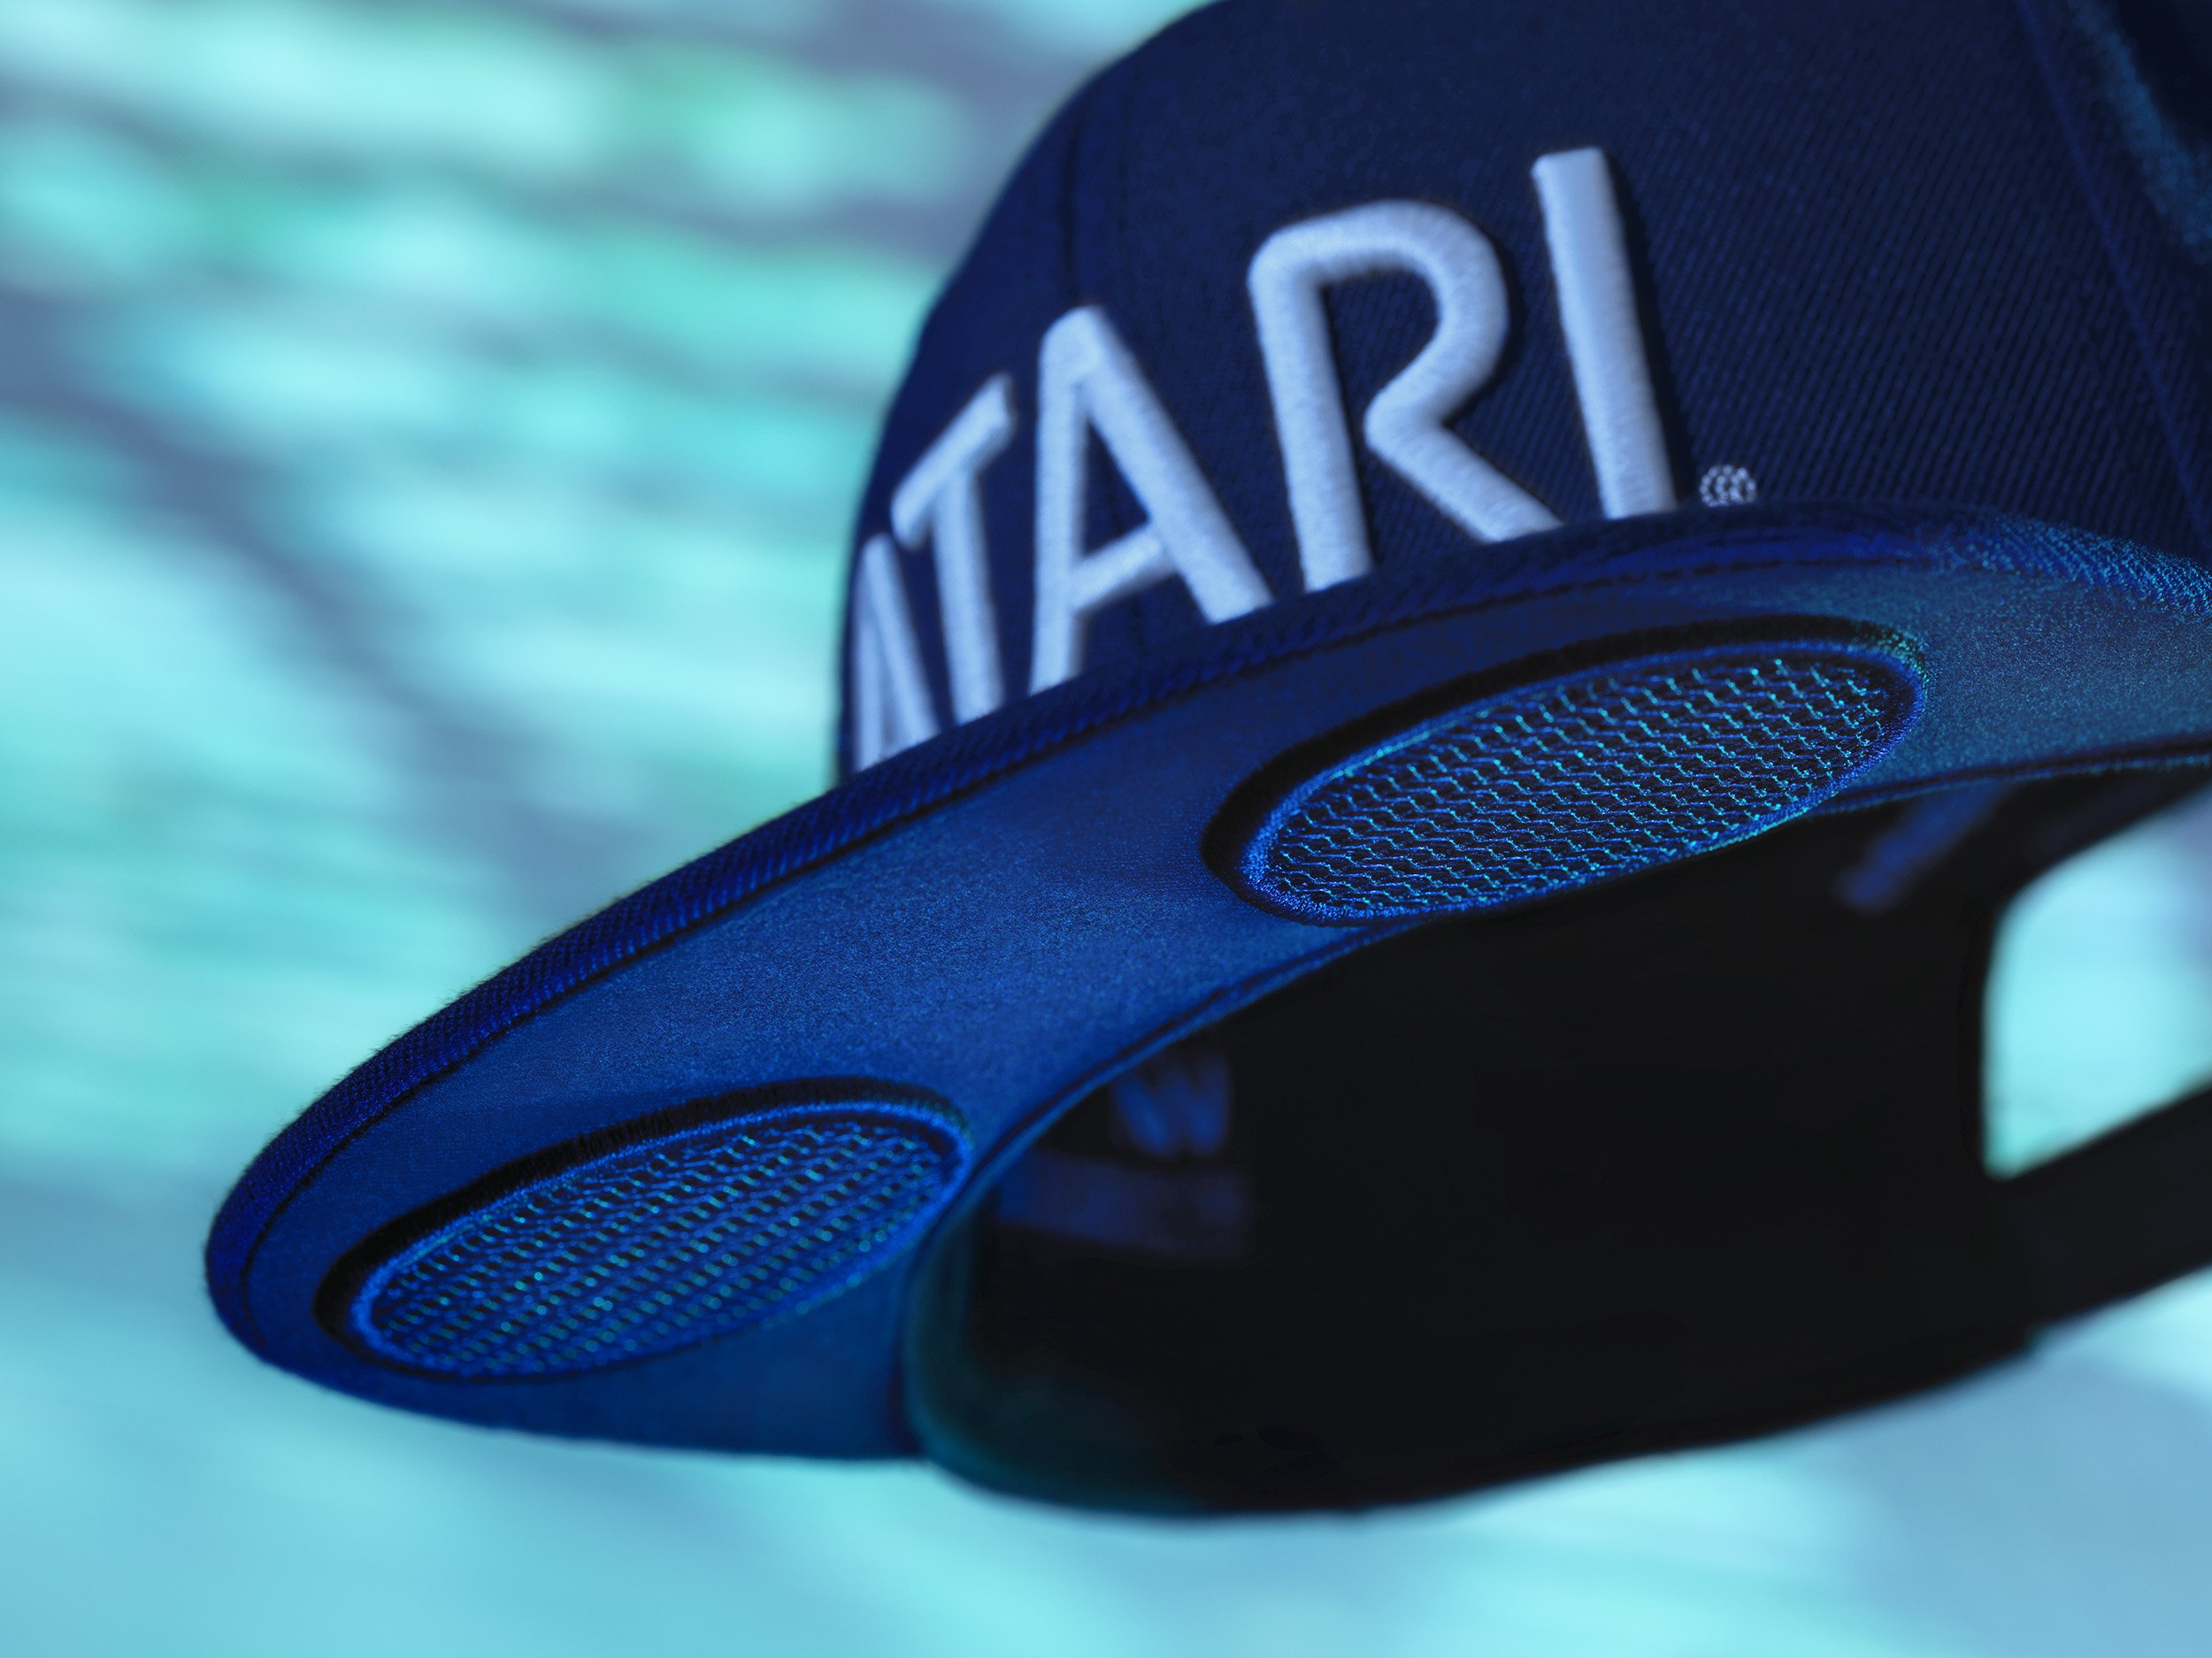 Modojo | Become an Atari Beta Tester and Enter to Win an Atari Speakerhat